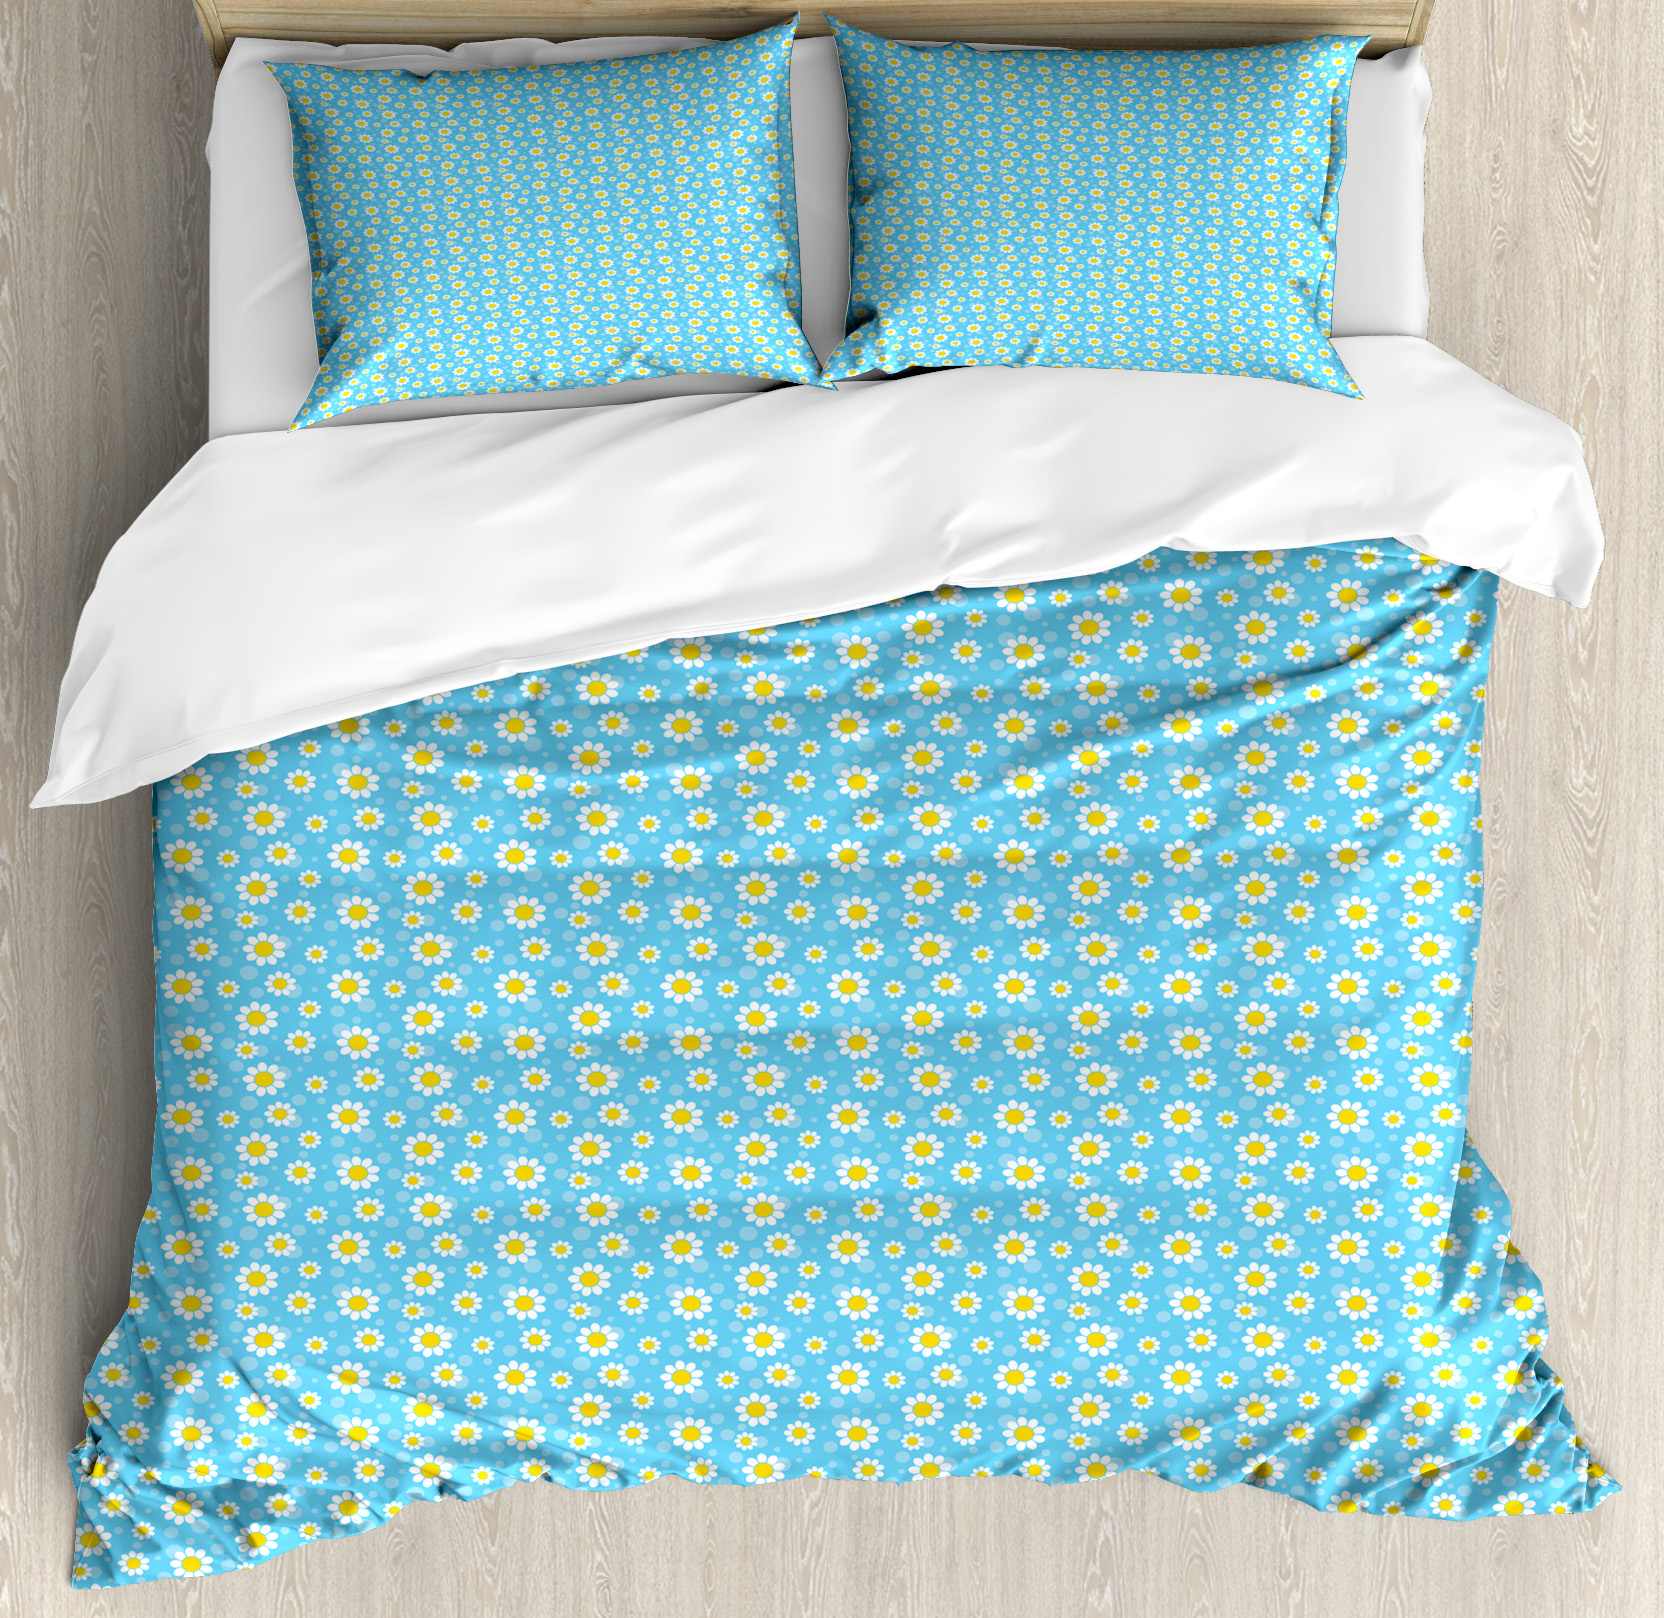 Yellow And Blue Queen Size Duvet Cover Set Cartoon